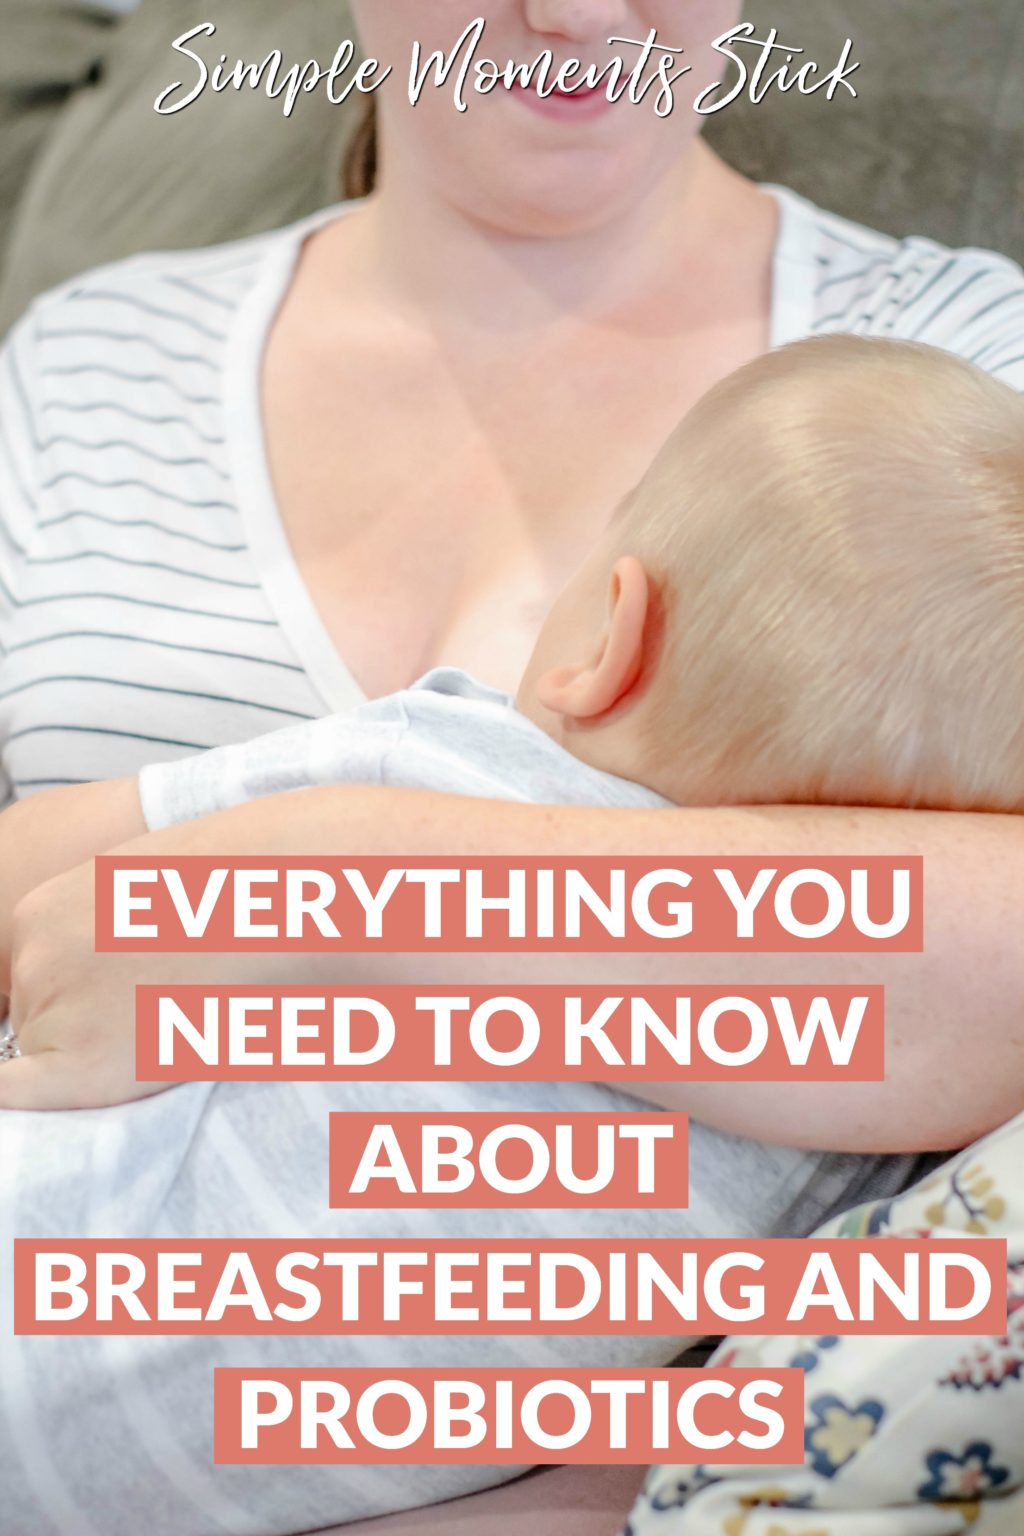 #ad Everything you need to know about breastfeeding and probiotics